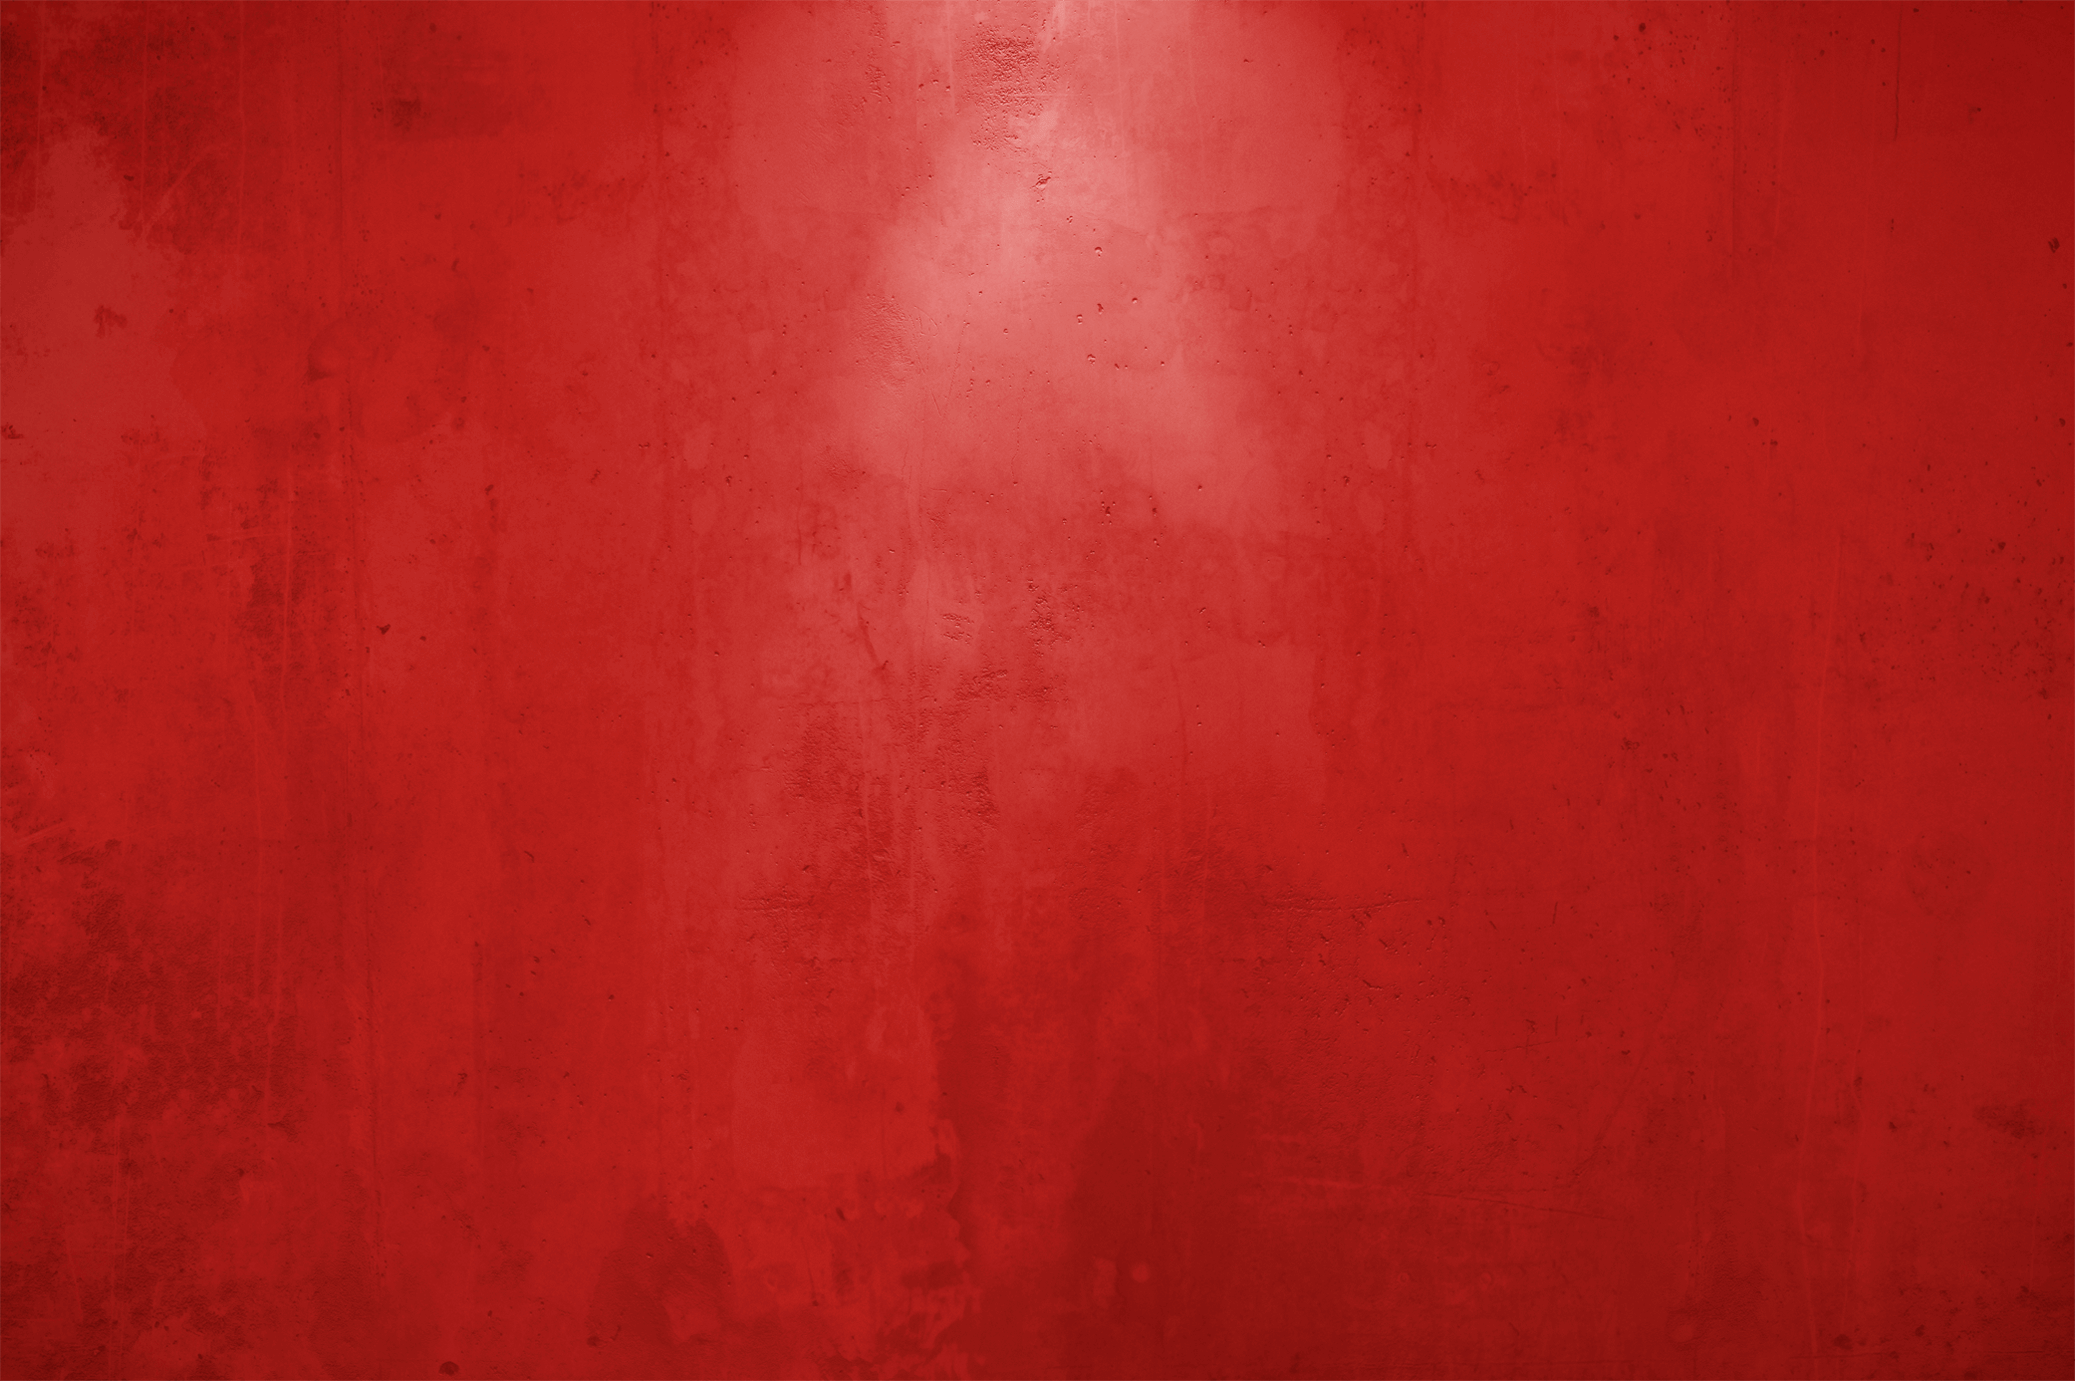 Rood_900x600.png